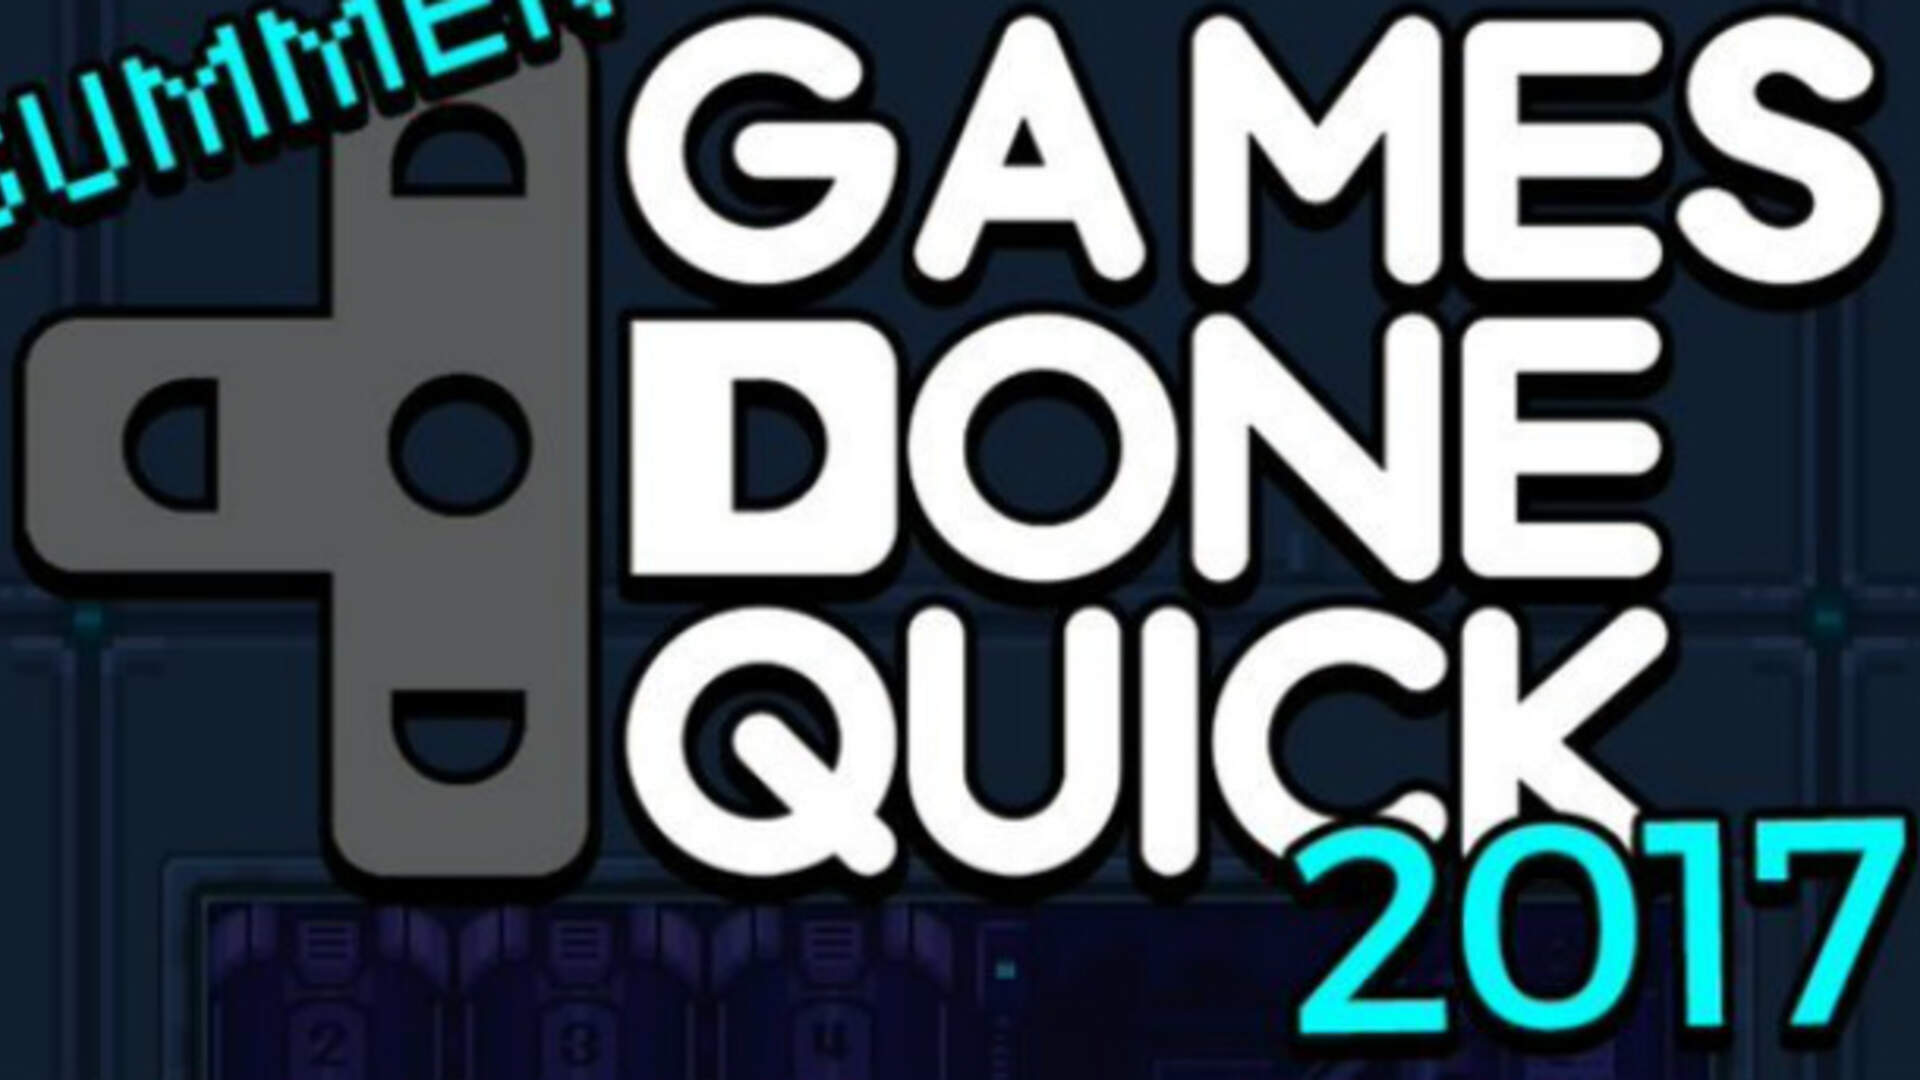 Summer Games Done Quick 2017 Lands $466,000 Ahead of Last Year's Total